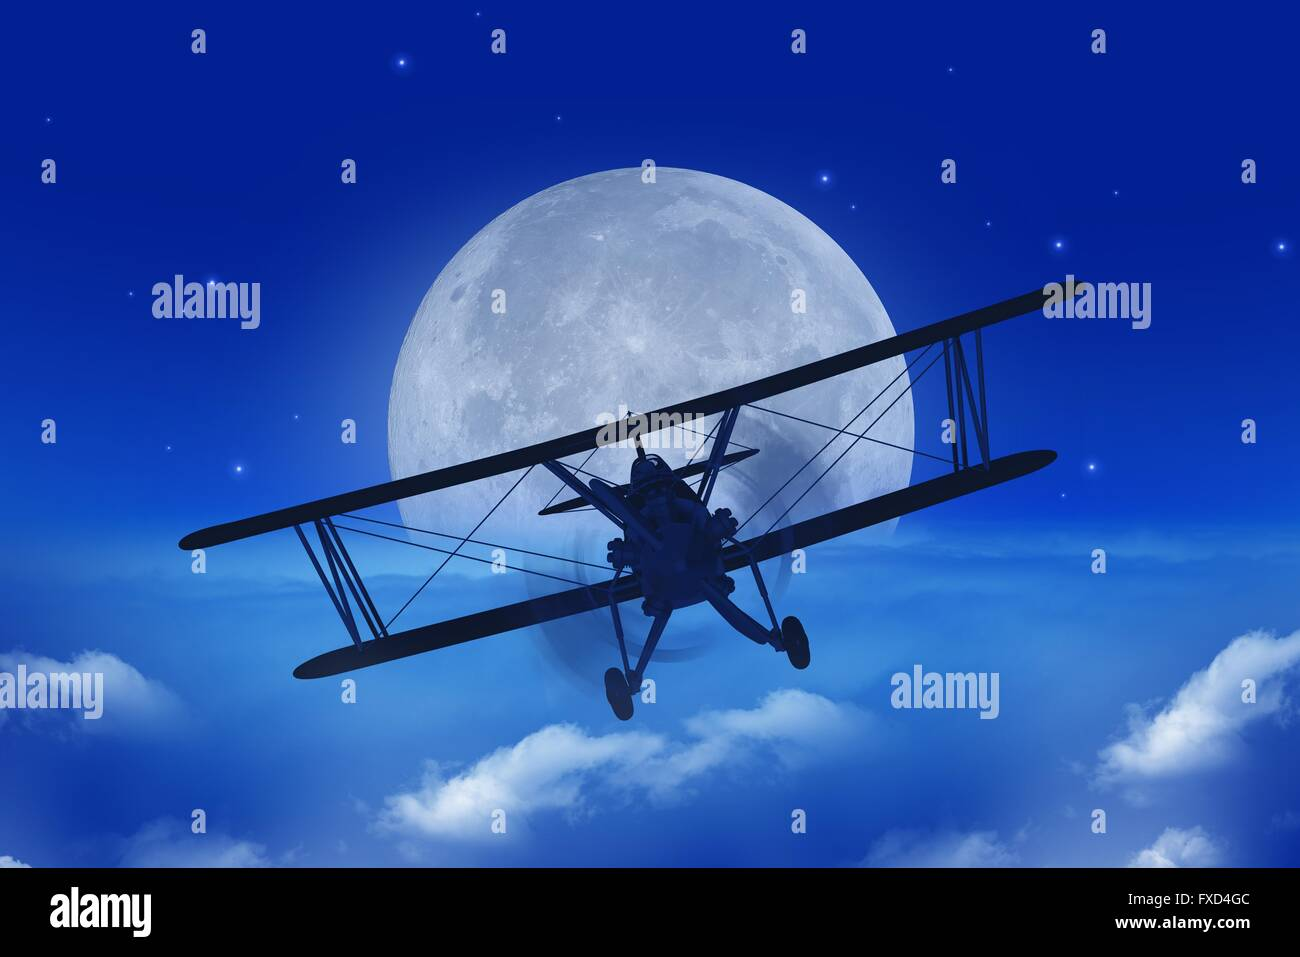 Full Moon Airplane Getaway Abstract Illustration. Flying Vintage Airplane Above the Clouds At Night. - Stock Image